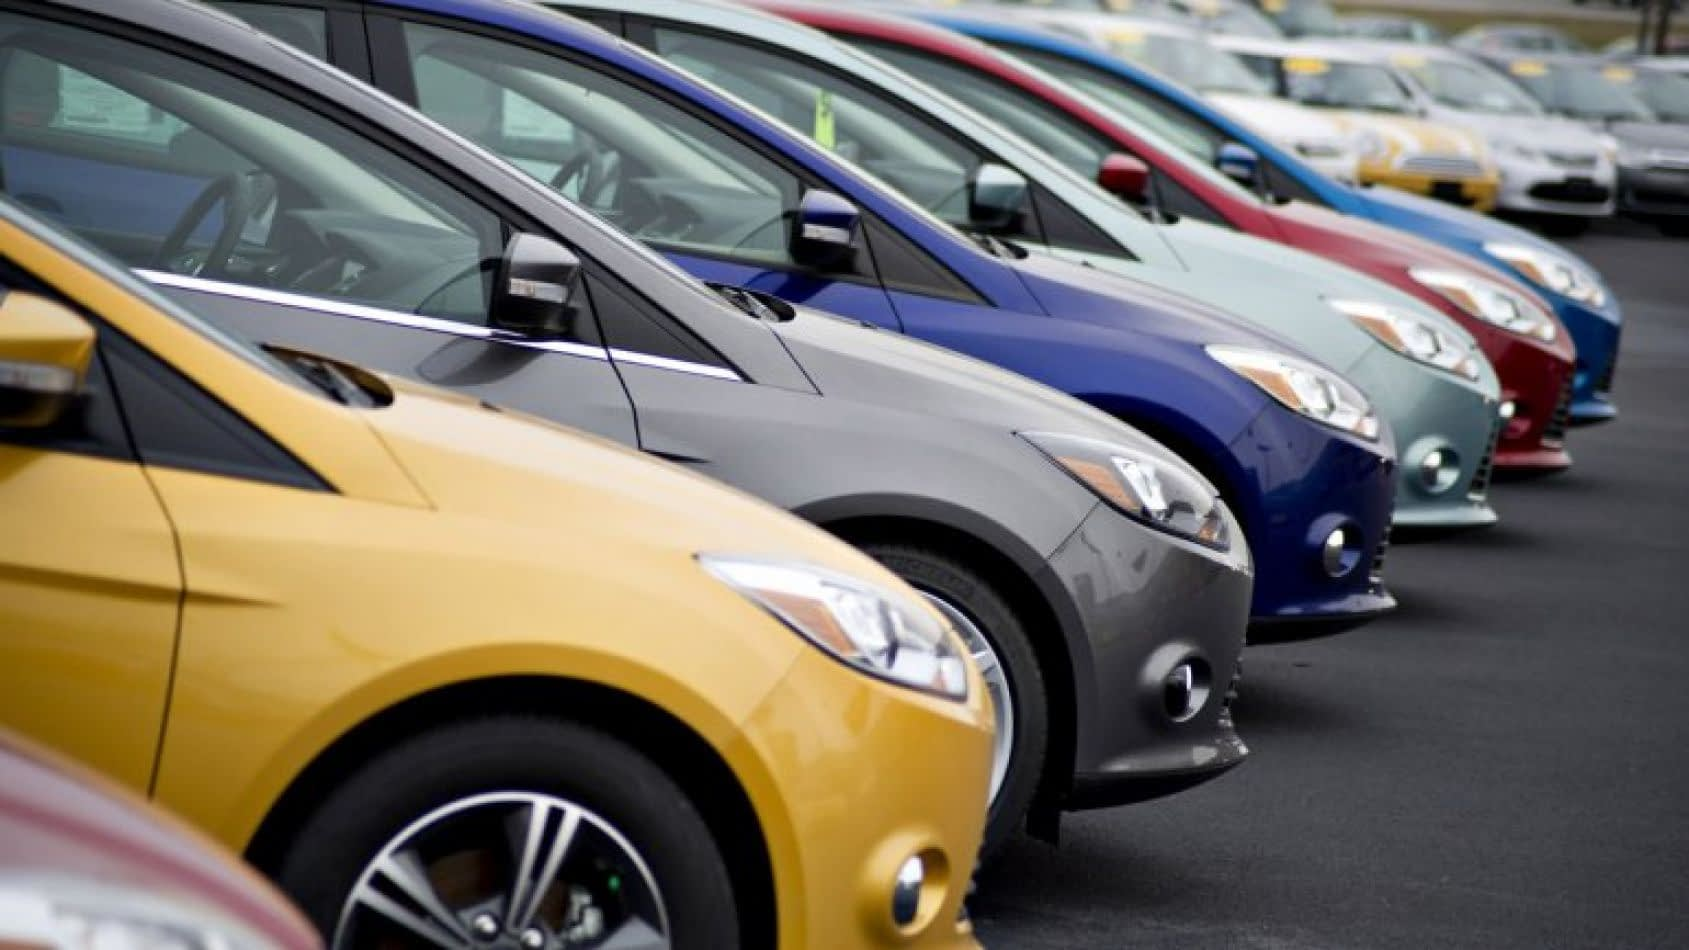 Chihuahua's new car sales continue to decline